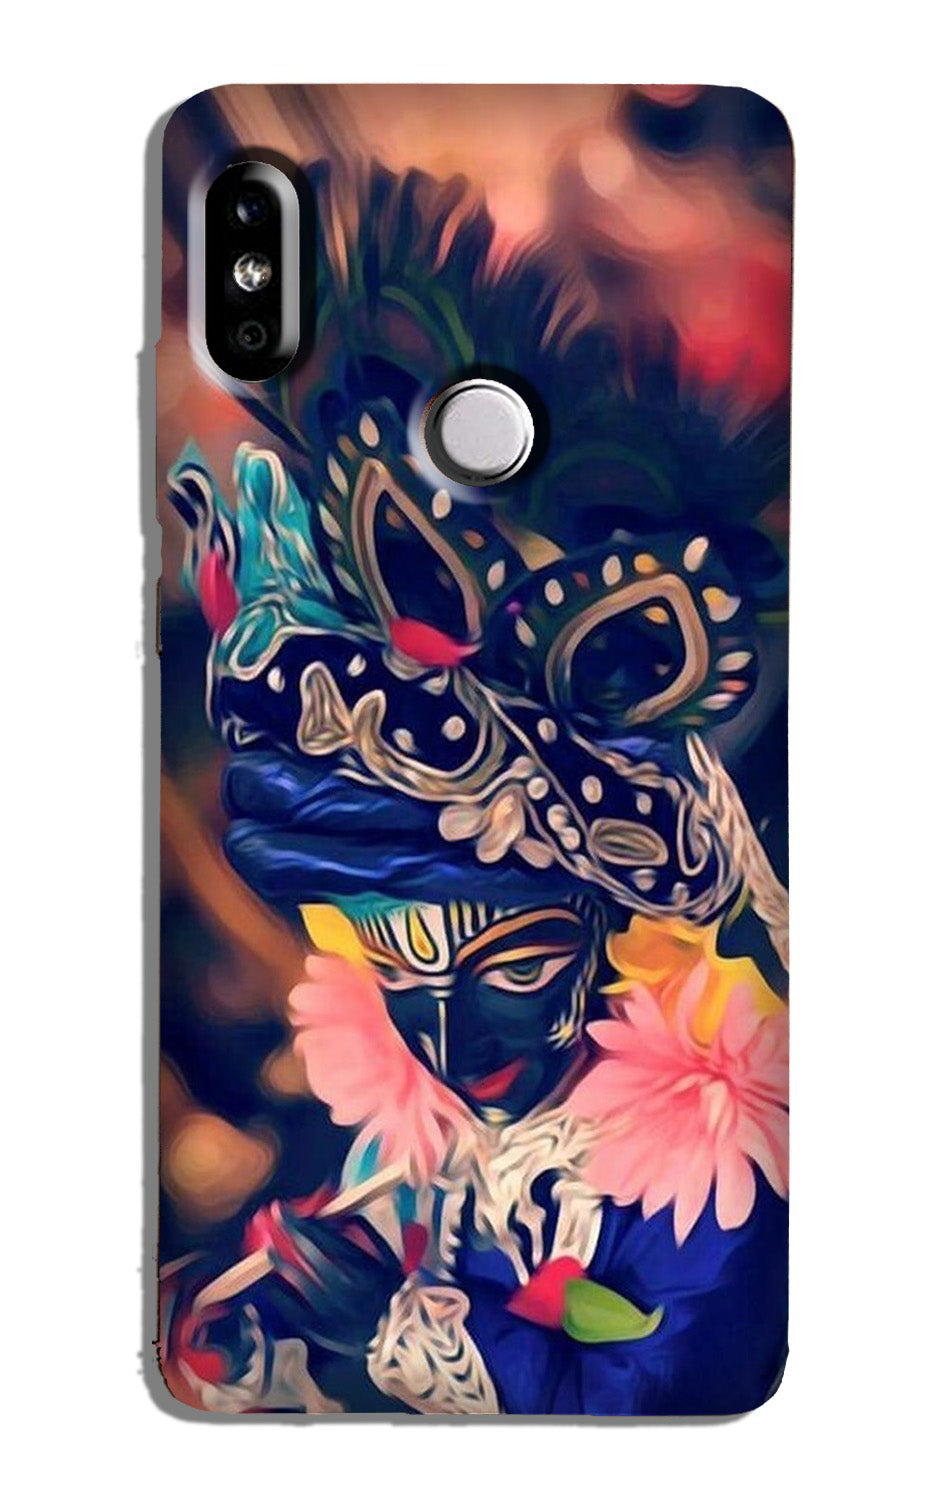 Lord Krishna Case for Redmi 6 Pro